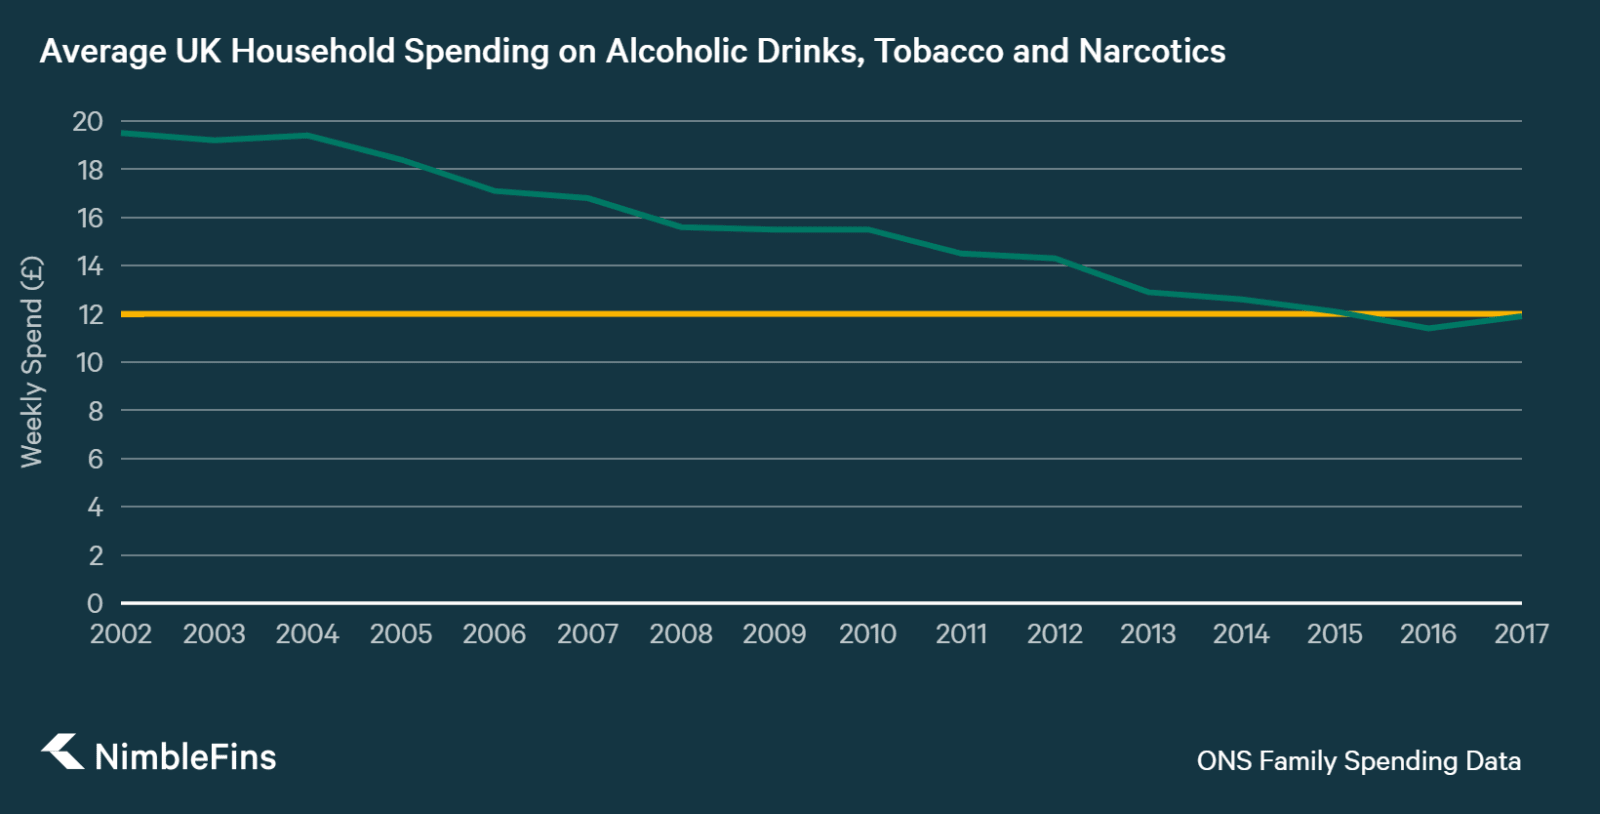 Graph showing the decrease in UK Household spending on alcohol and tobacco from 2002 to 2016, illustrating spending has dipped below £12 a week for the first time